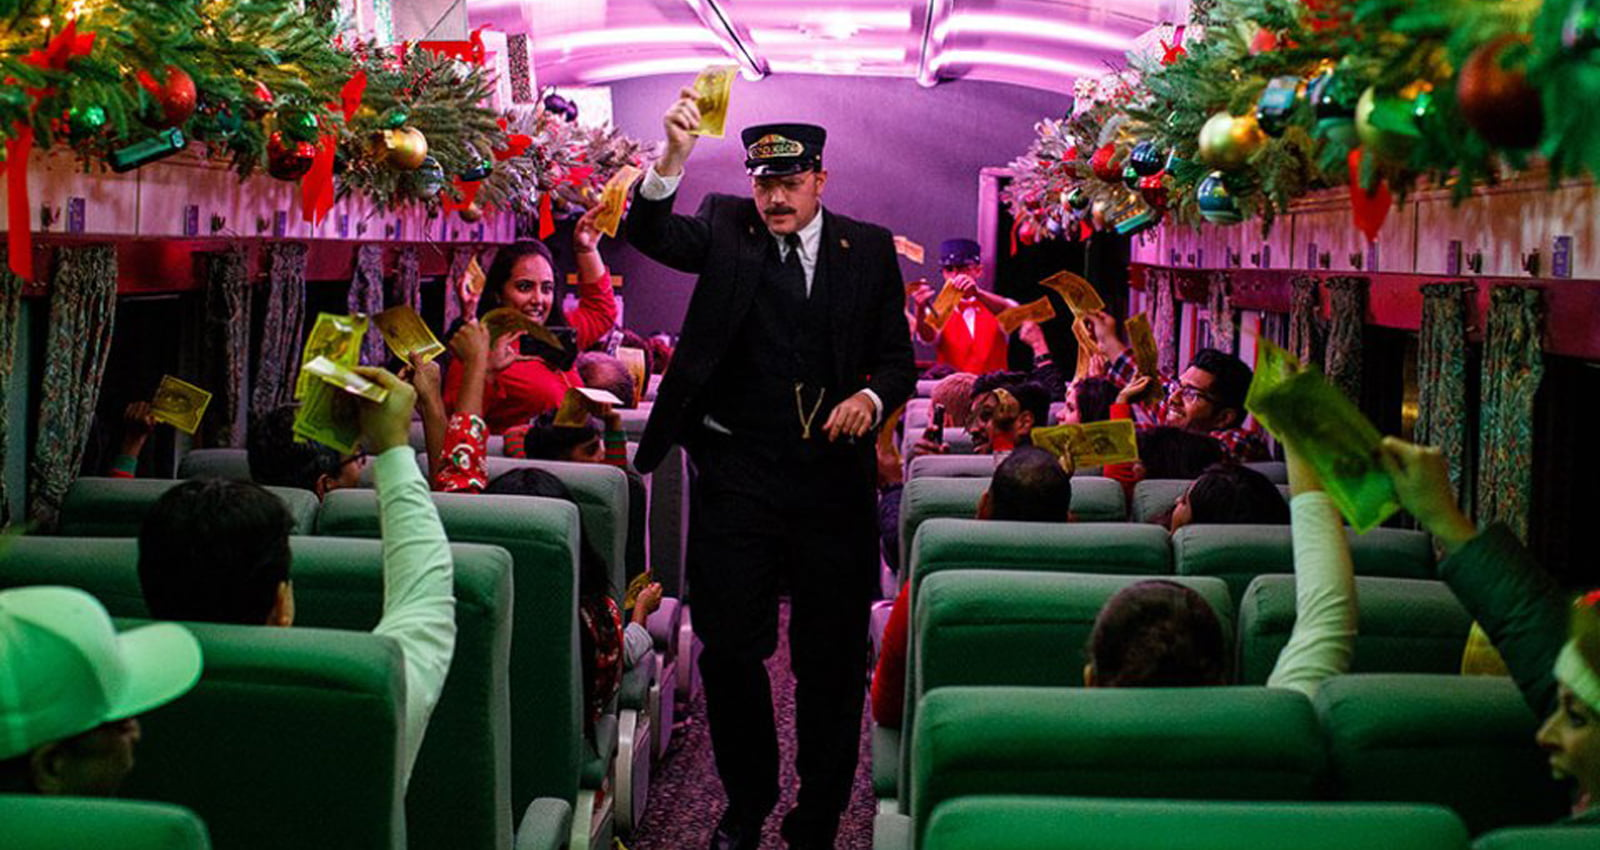 Morristown & Erie Railway Polar Express Ride | Photo Courtesy of Rail Events Productions